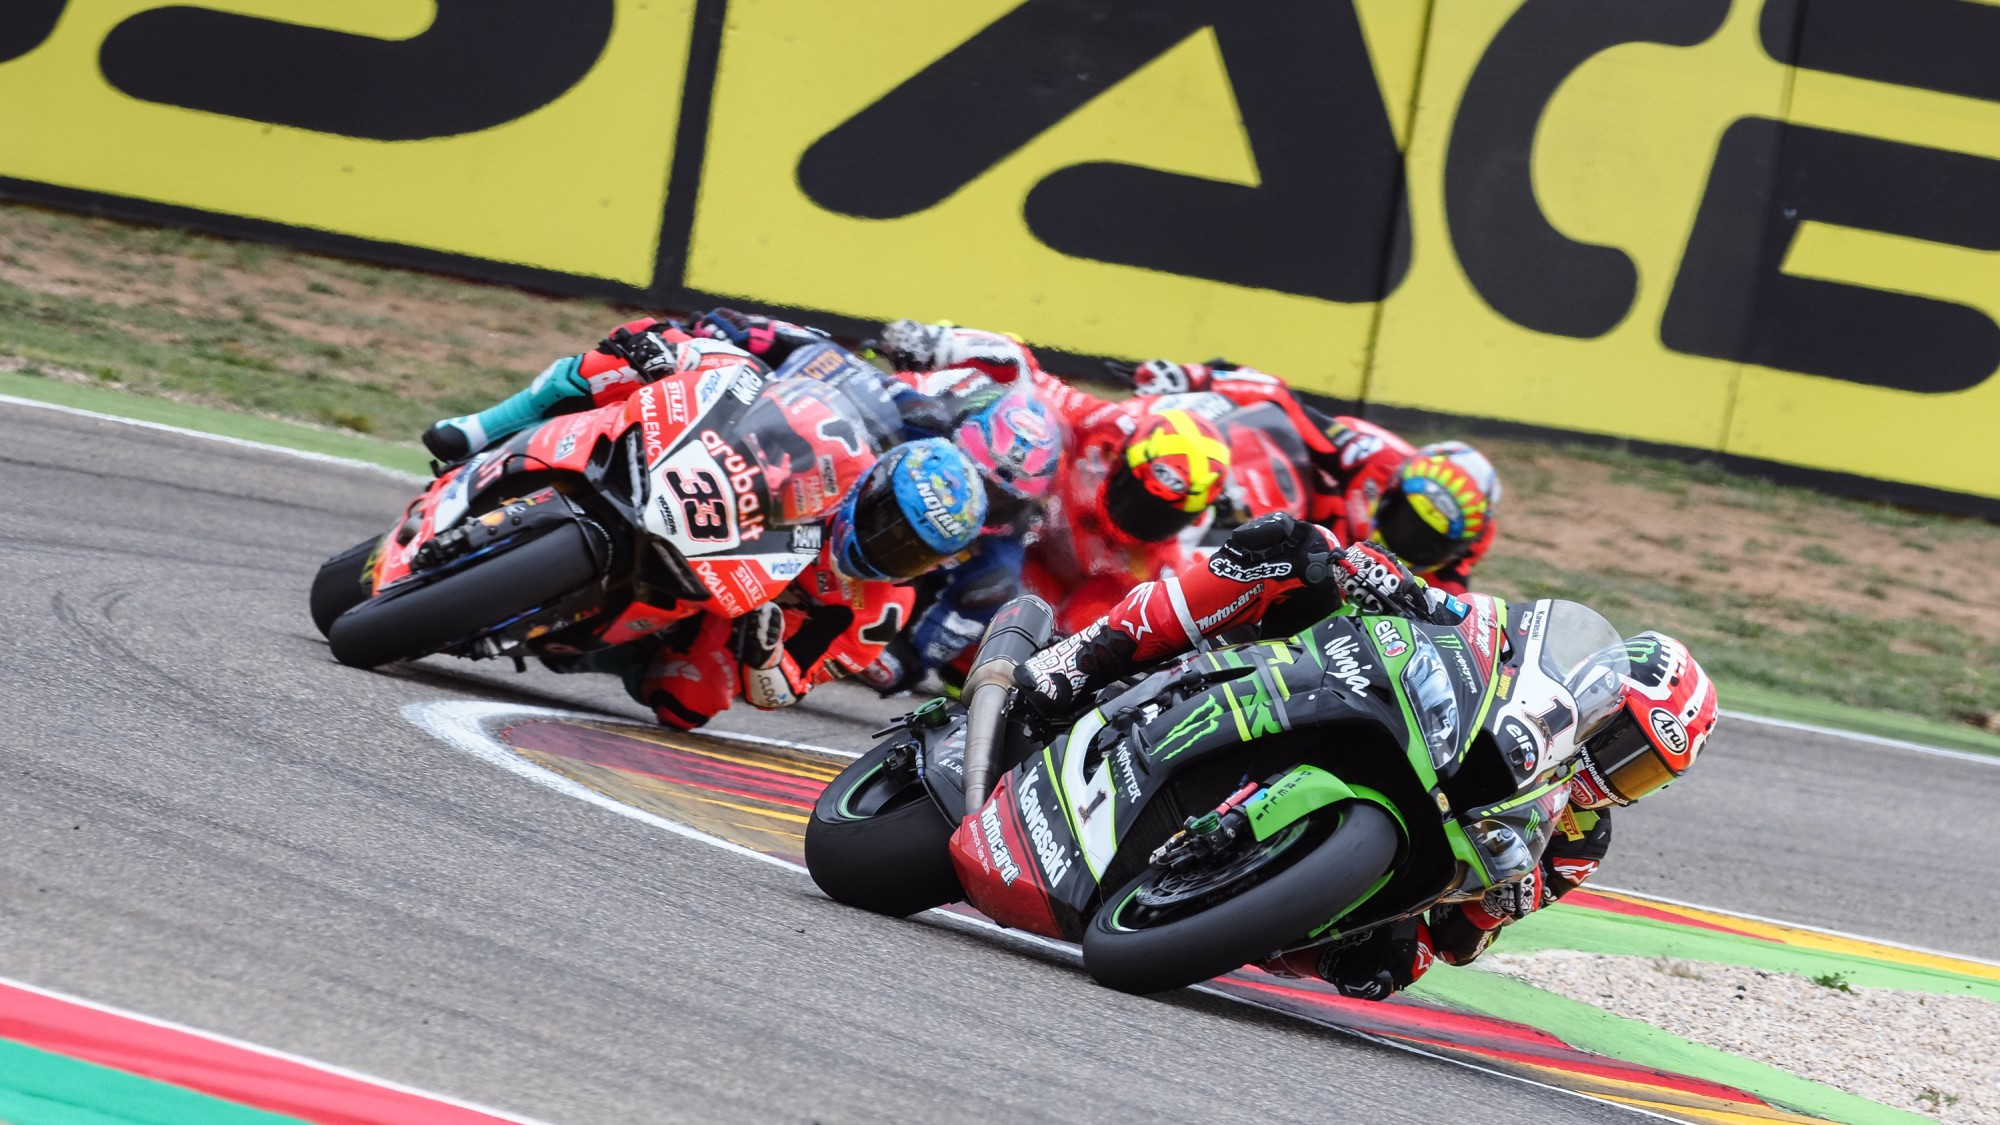 WSBK Aragon – Rea back in business wins Race 1